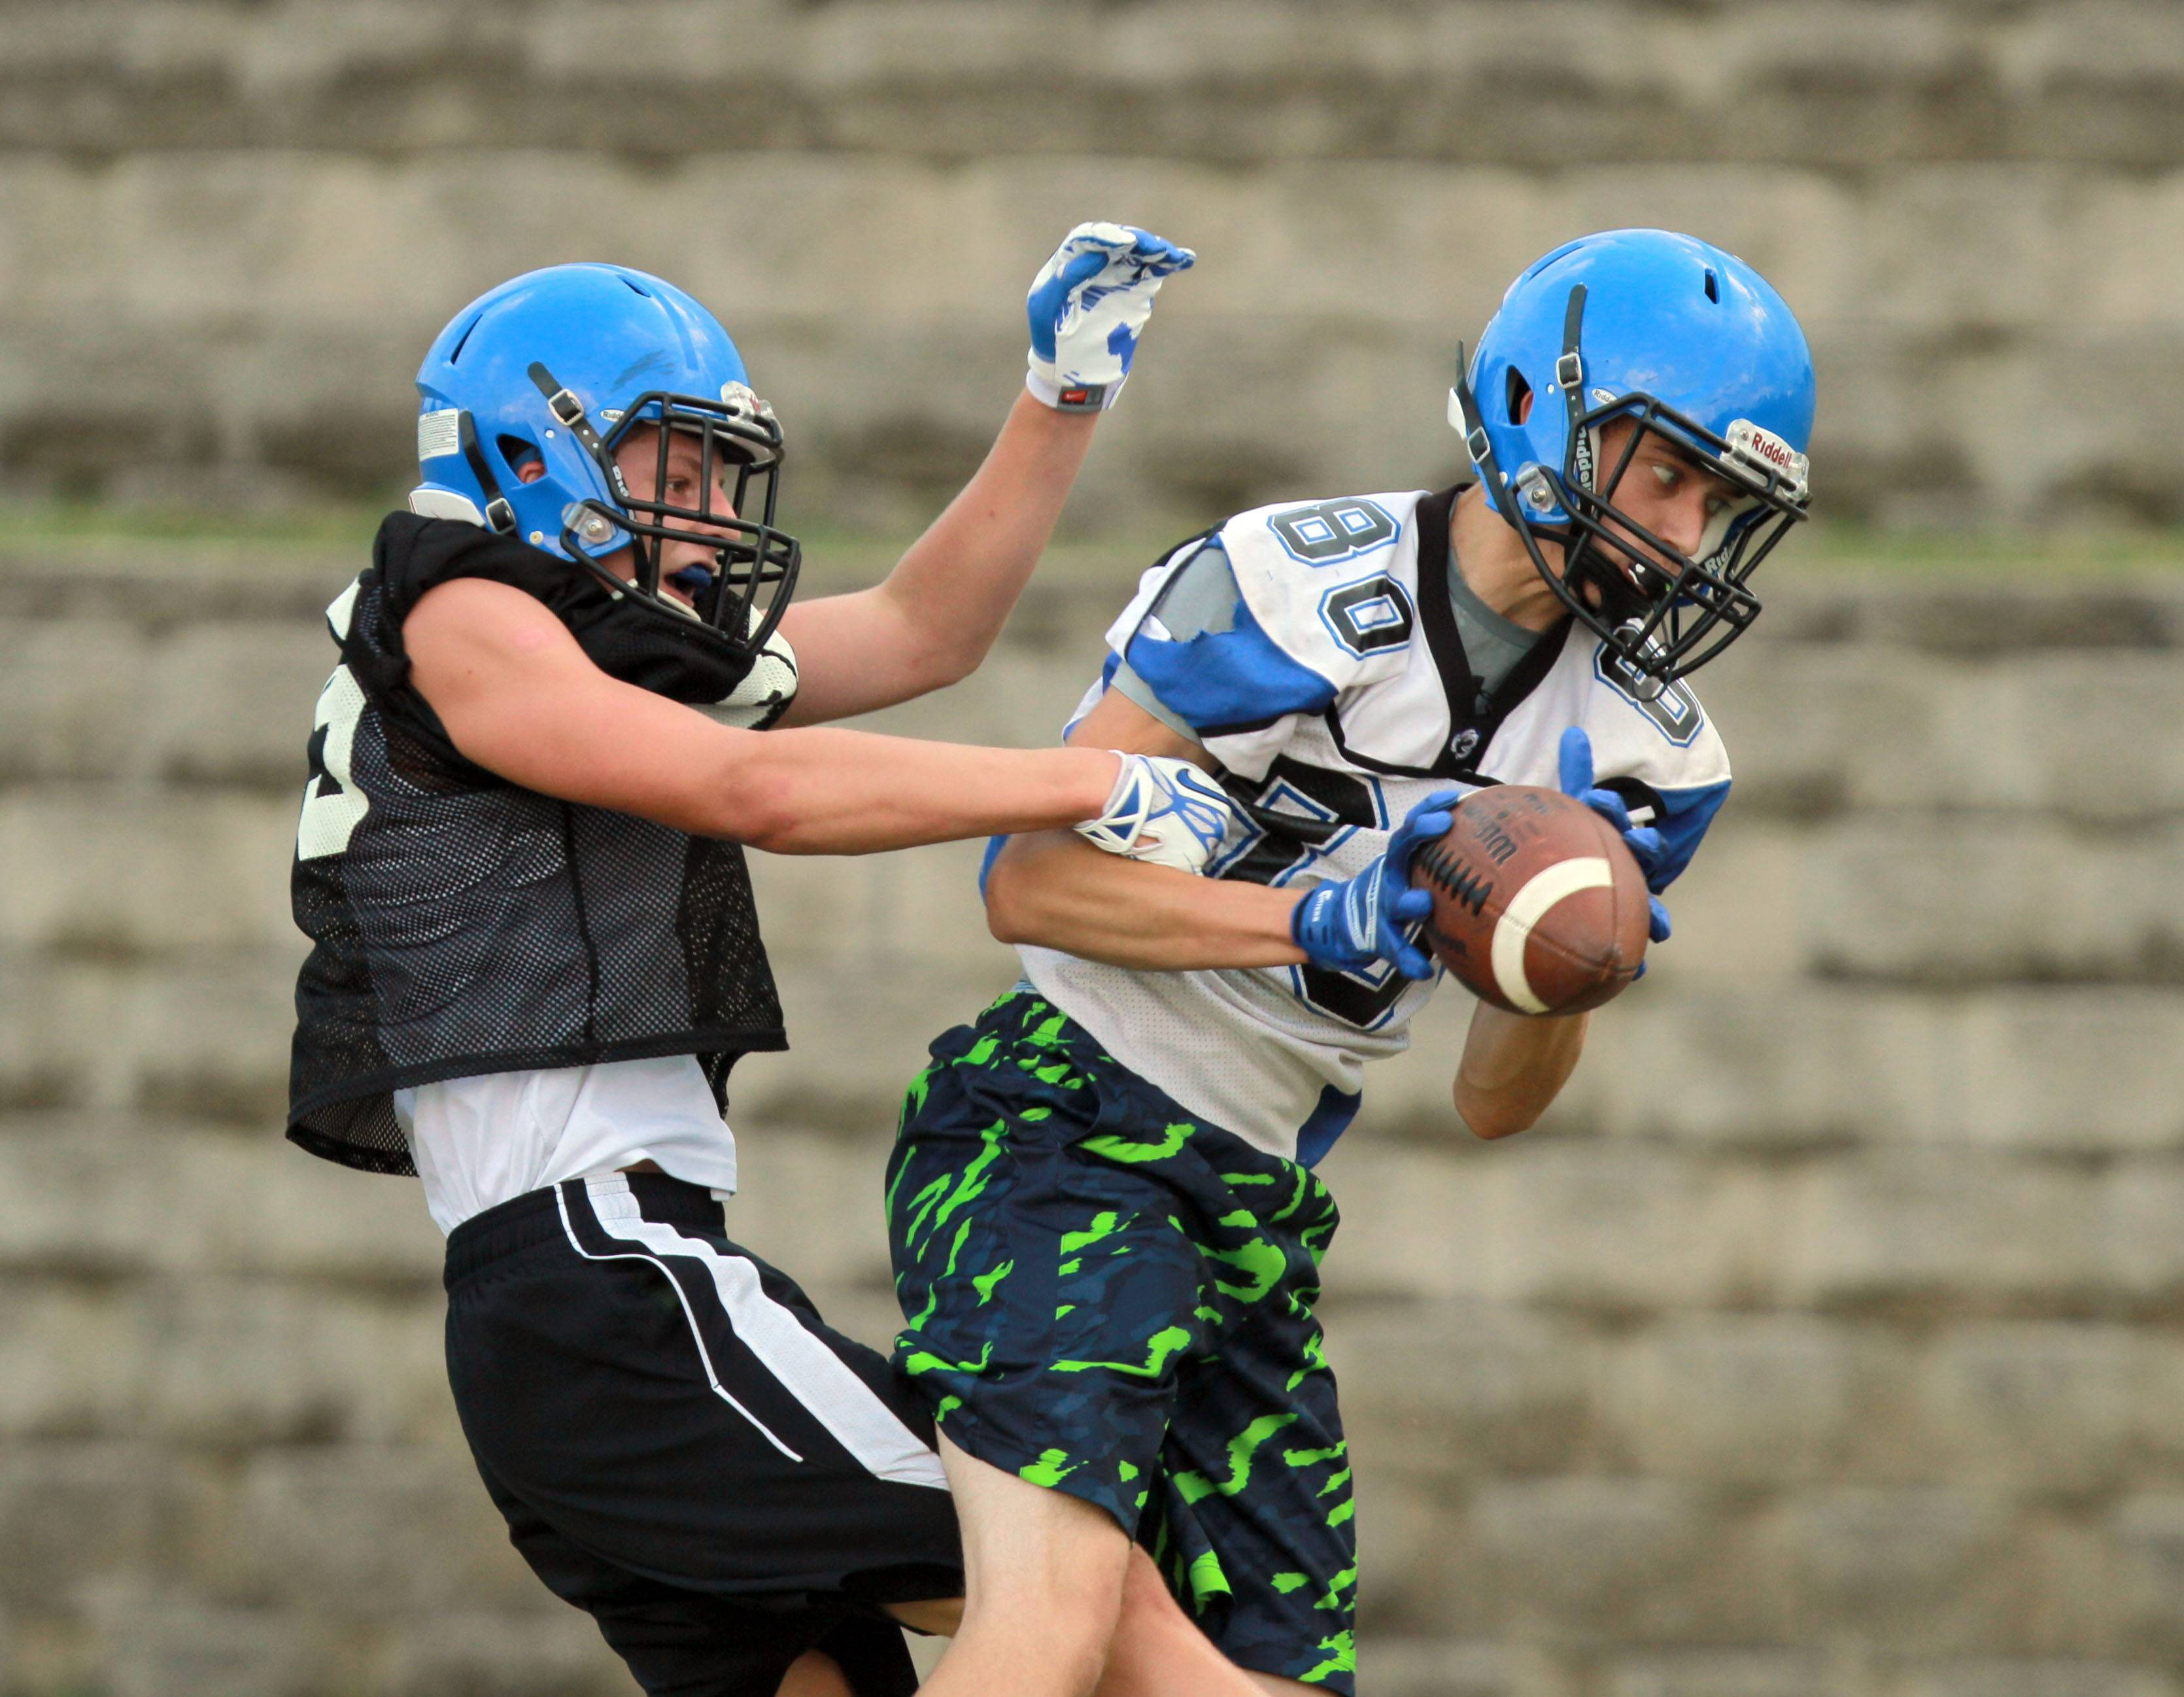 DJ Smith, right, and Matt Lawson go up for a pass during football practice Monday at Lake Zurich High School.